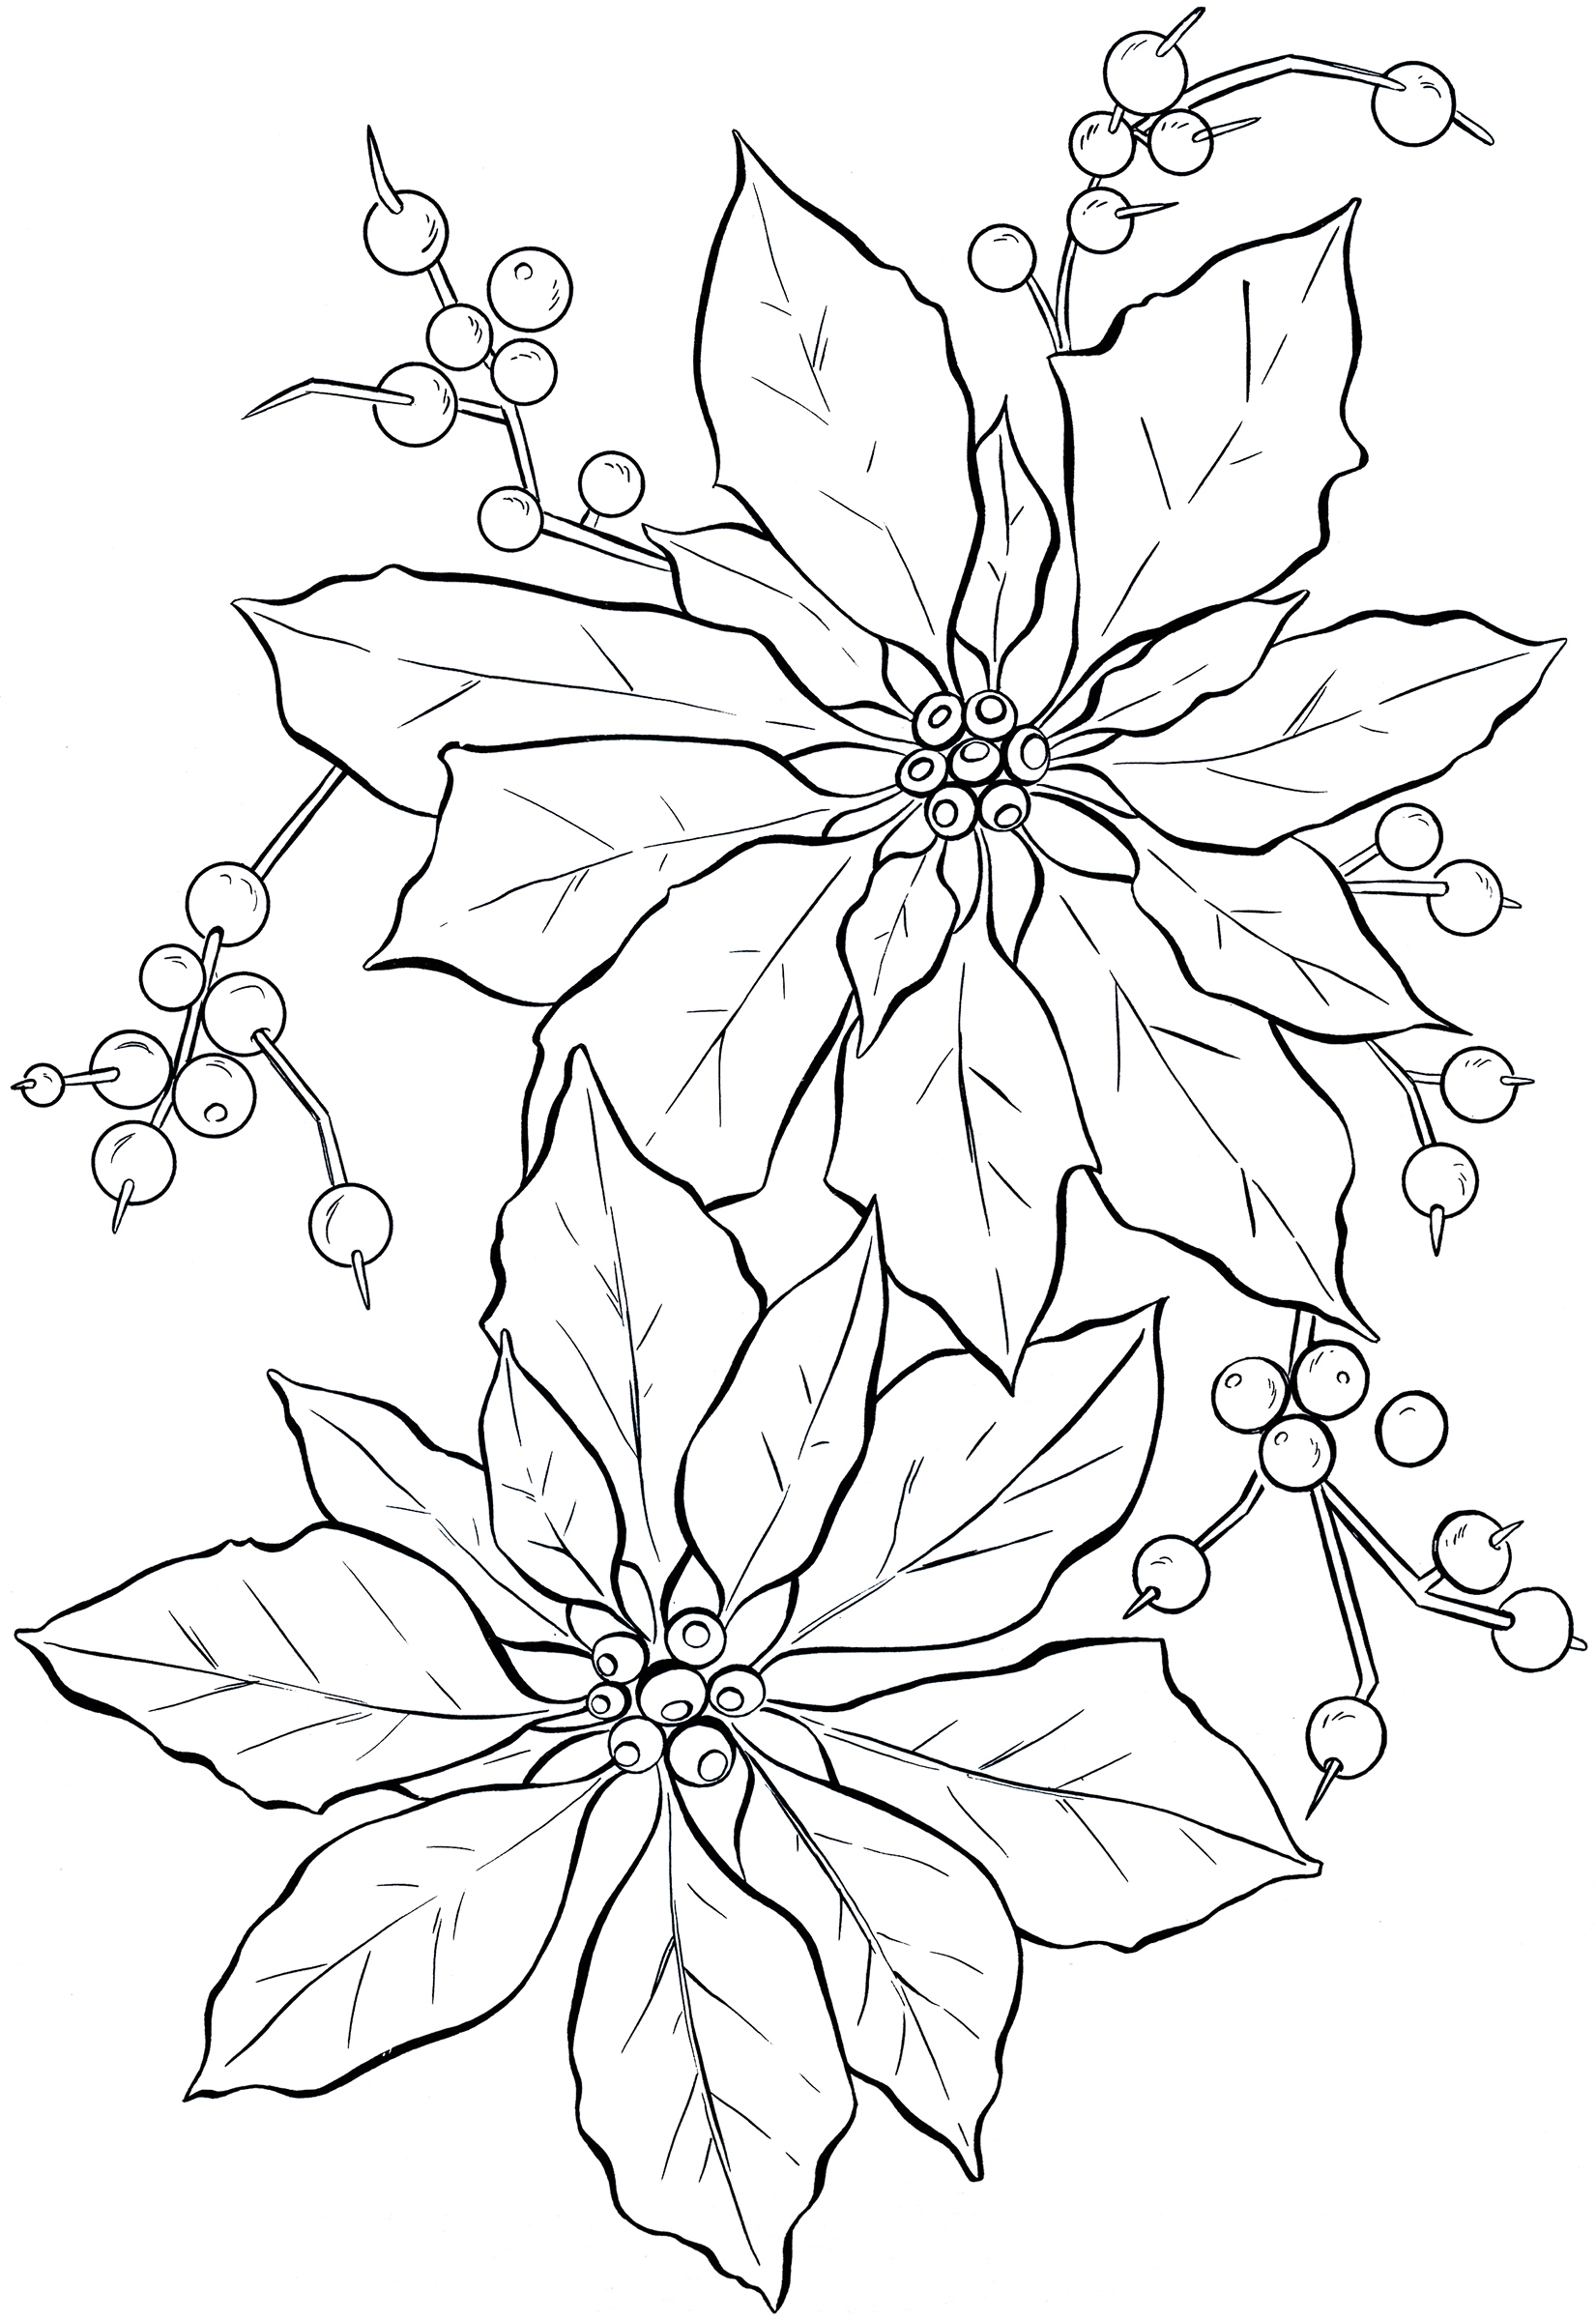 Red Flower Line Drawing : Free printable poinsettia coloring pages for kids